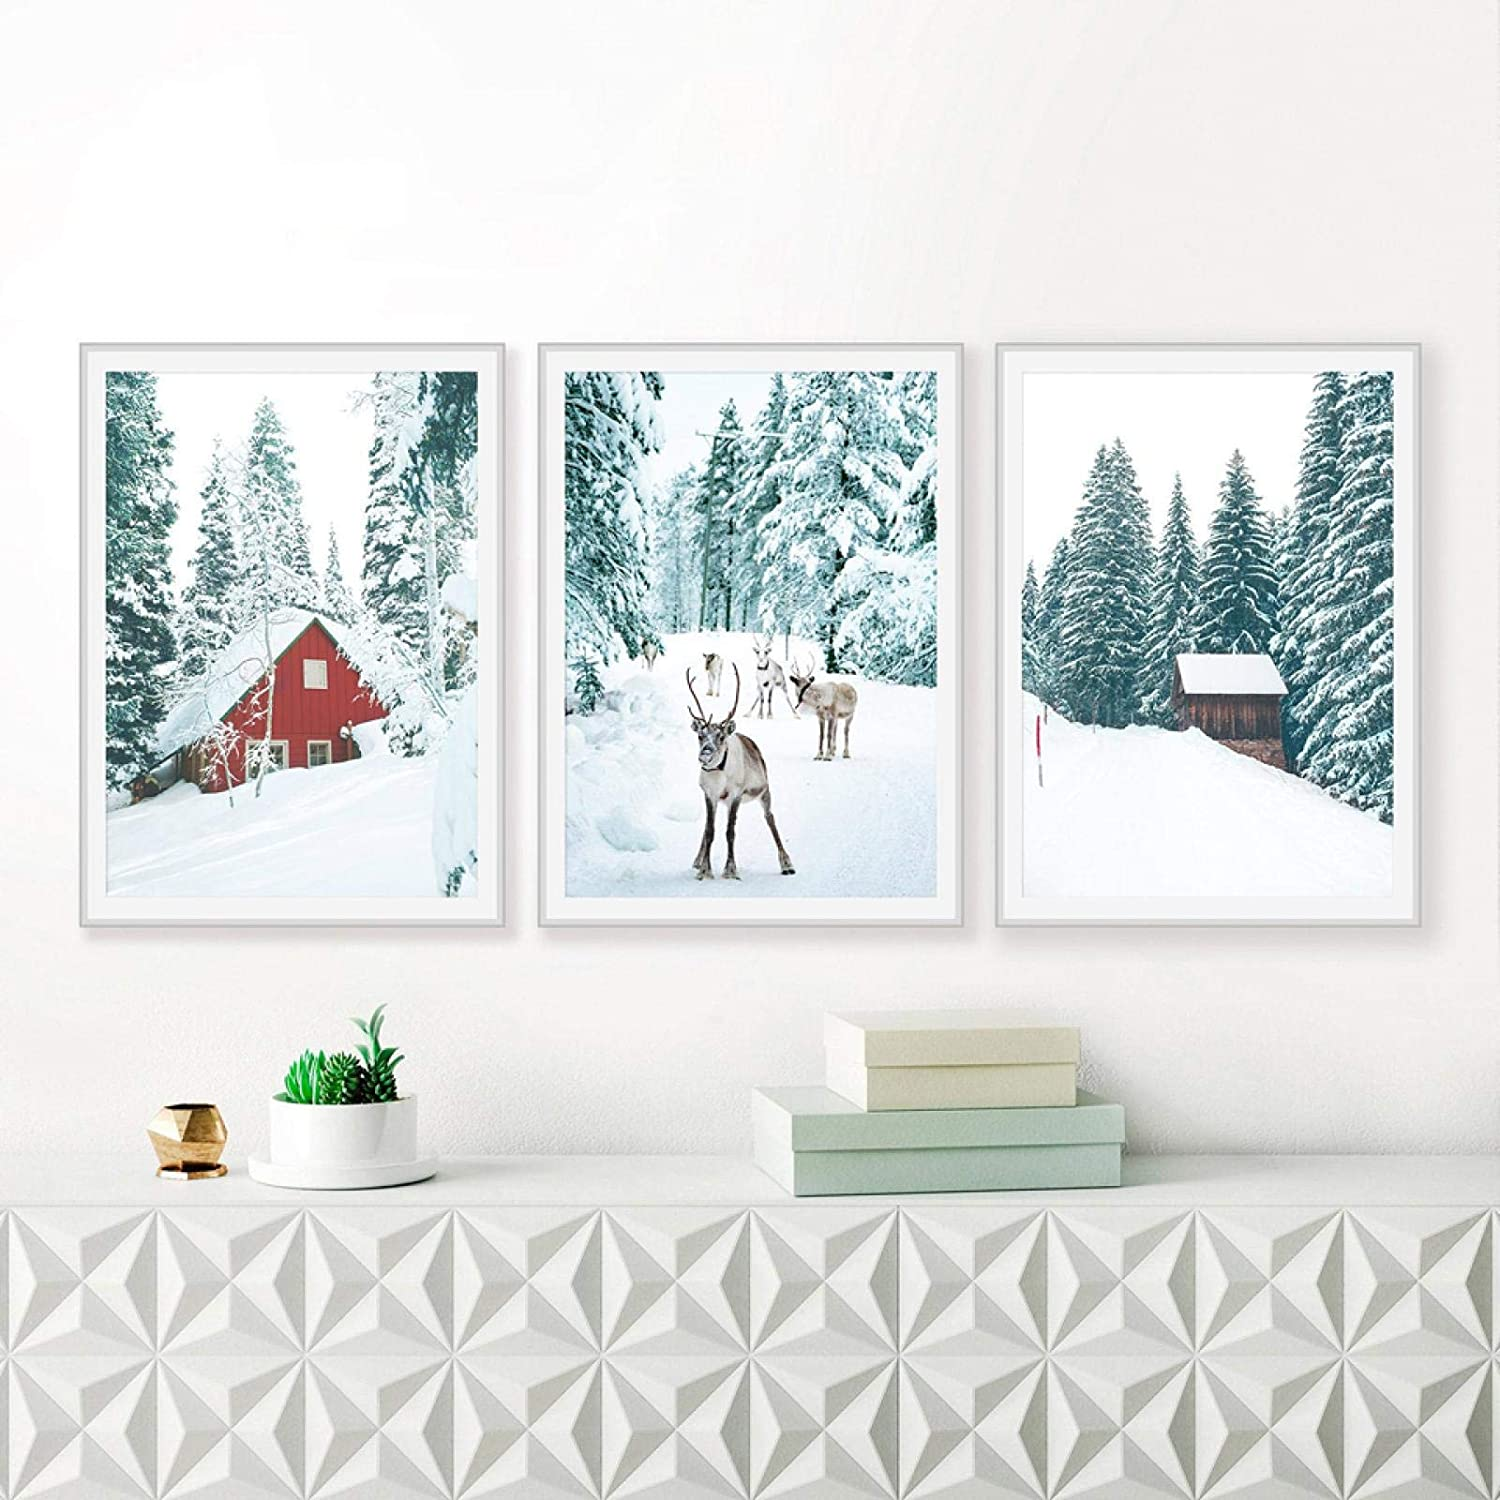 """ThinkingPower Wall Deer in Snow Winter Tree Poster Nordic Canvas Art Painting Wall Christmas Decor for Living Room Home Decor 11.8""""x15.7""""(30x50cm) x3 Frameless"""